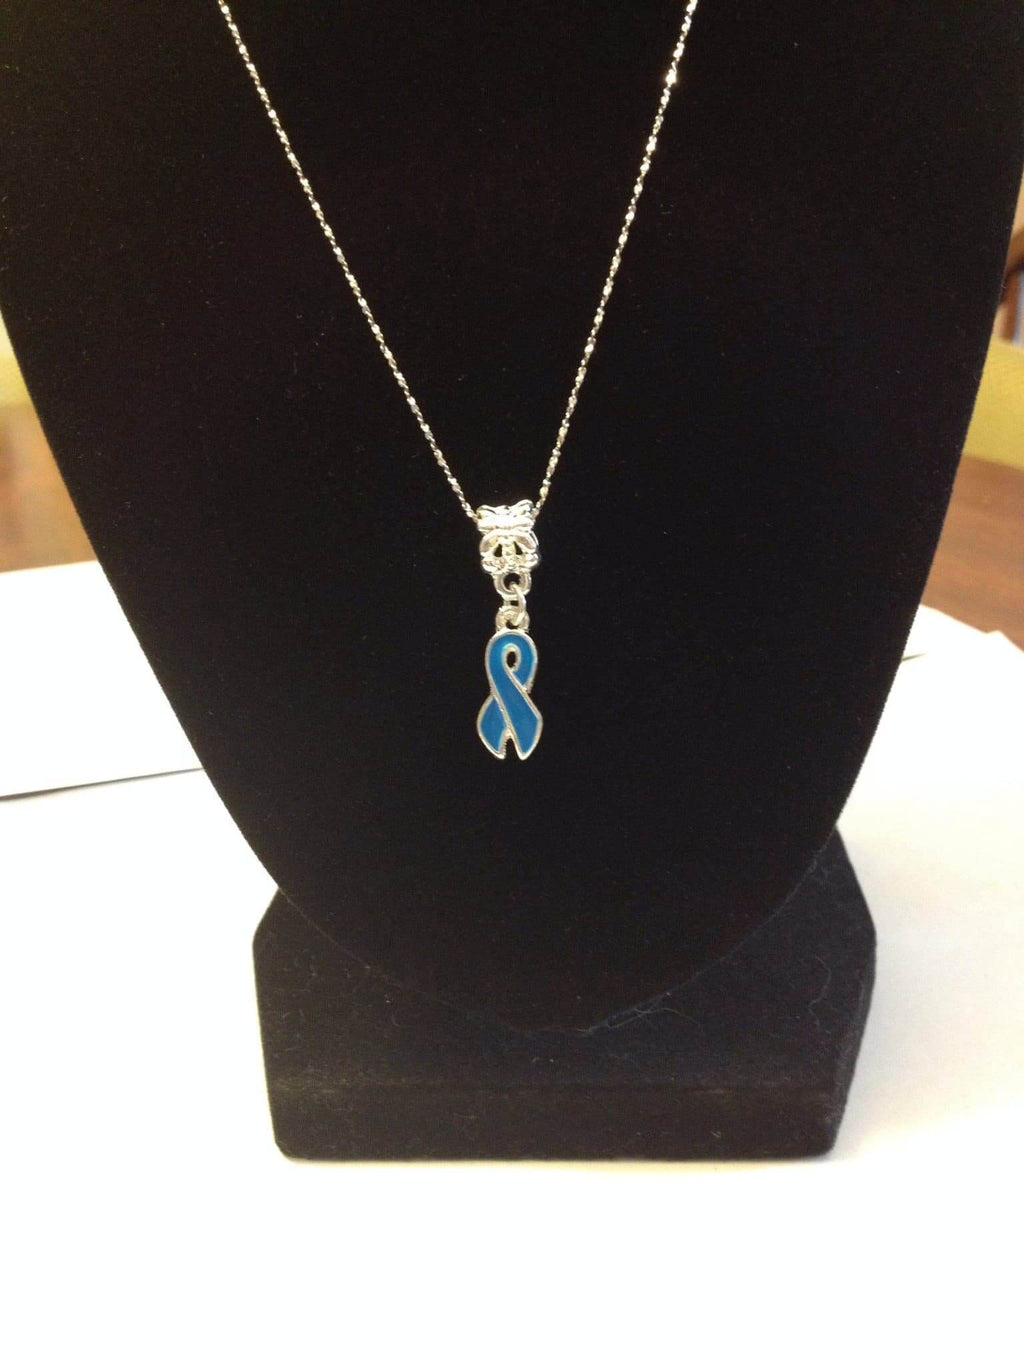 Blue Ribbon Necklace for Causes - The House of Awareness